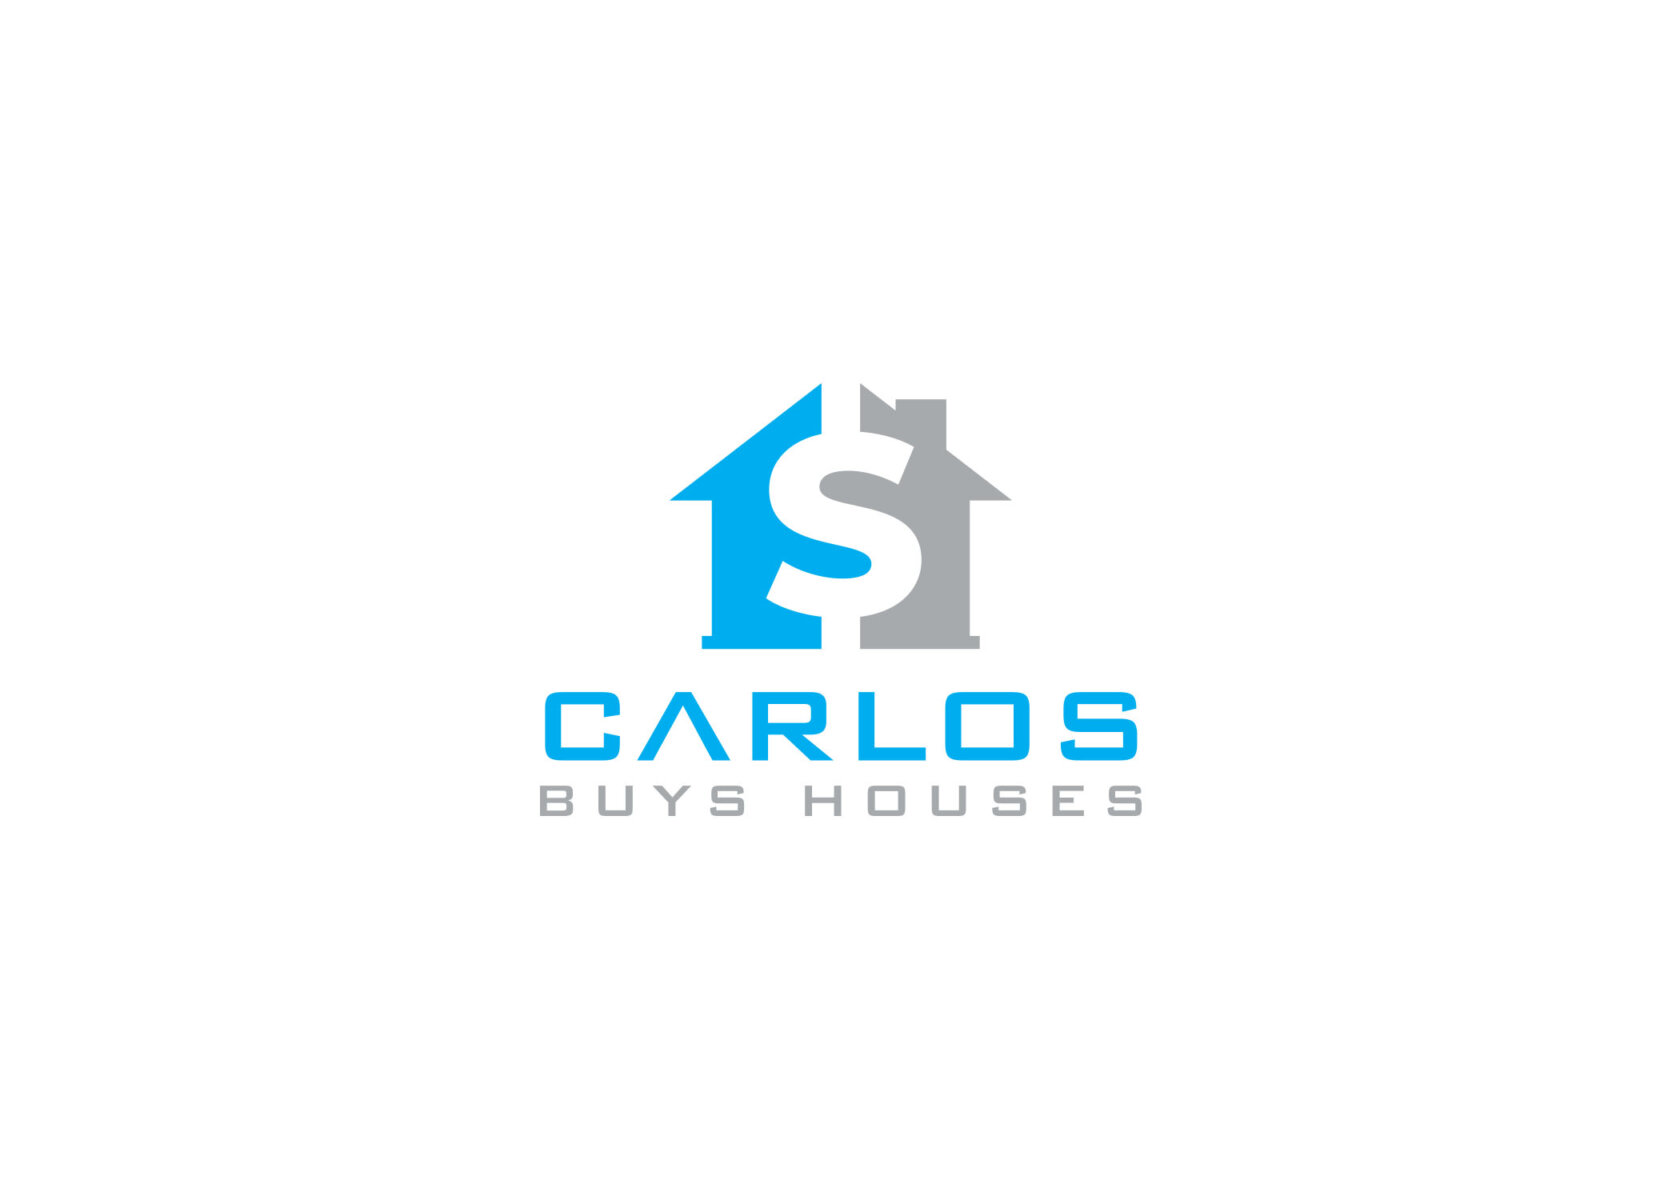 Carlos Buys Houses – Sell My House Fast In DC Maryland Virginia (DMV) and Florida logo